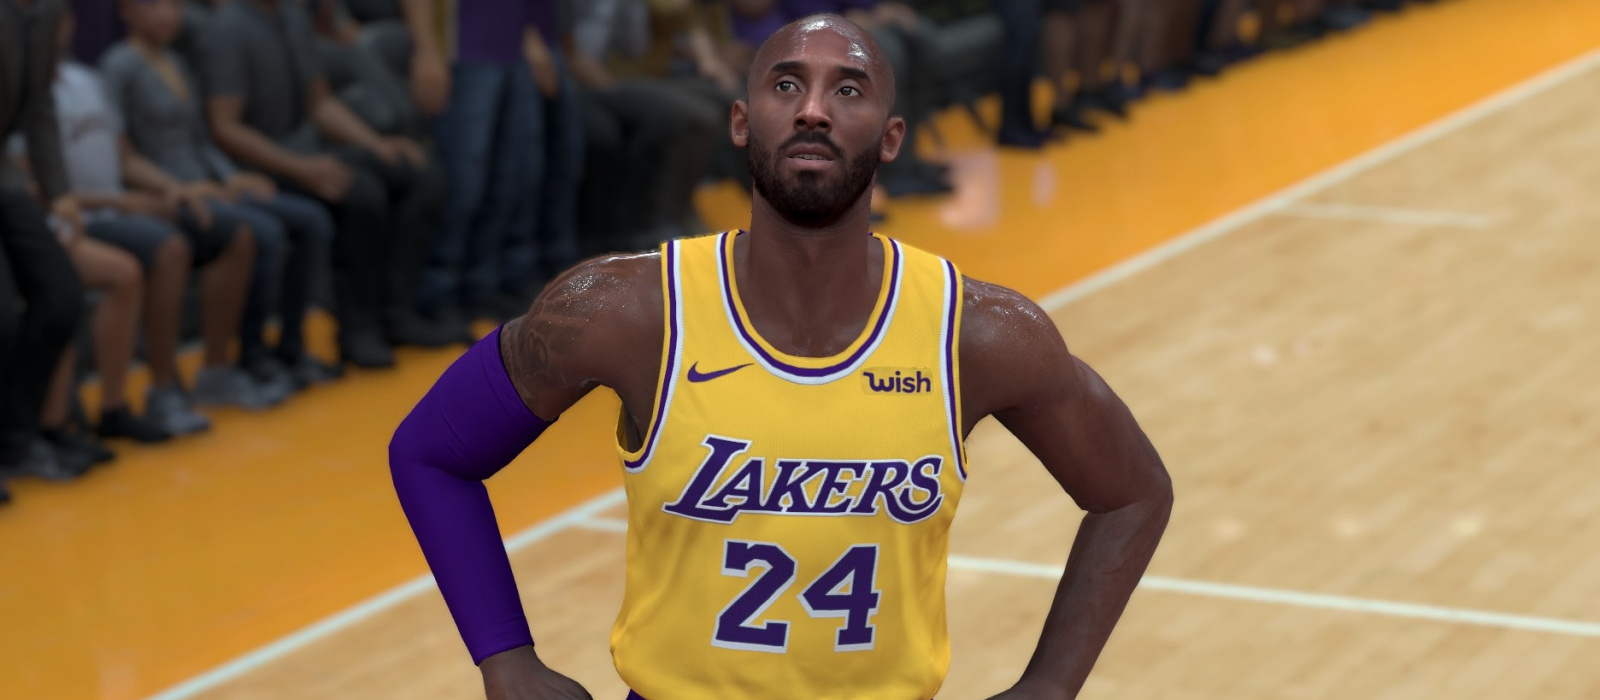 Will there be a crack for NBA 2K21?